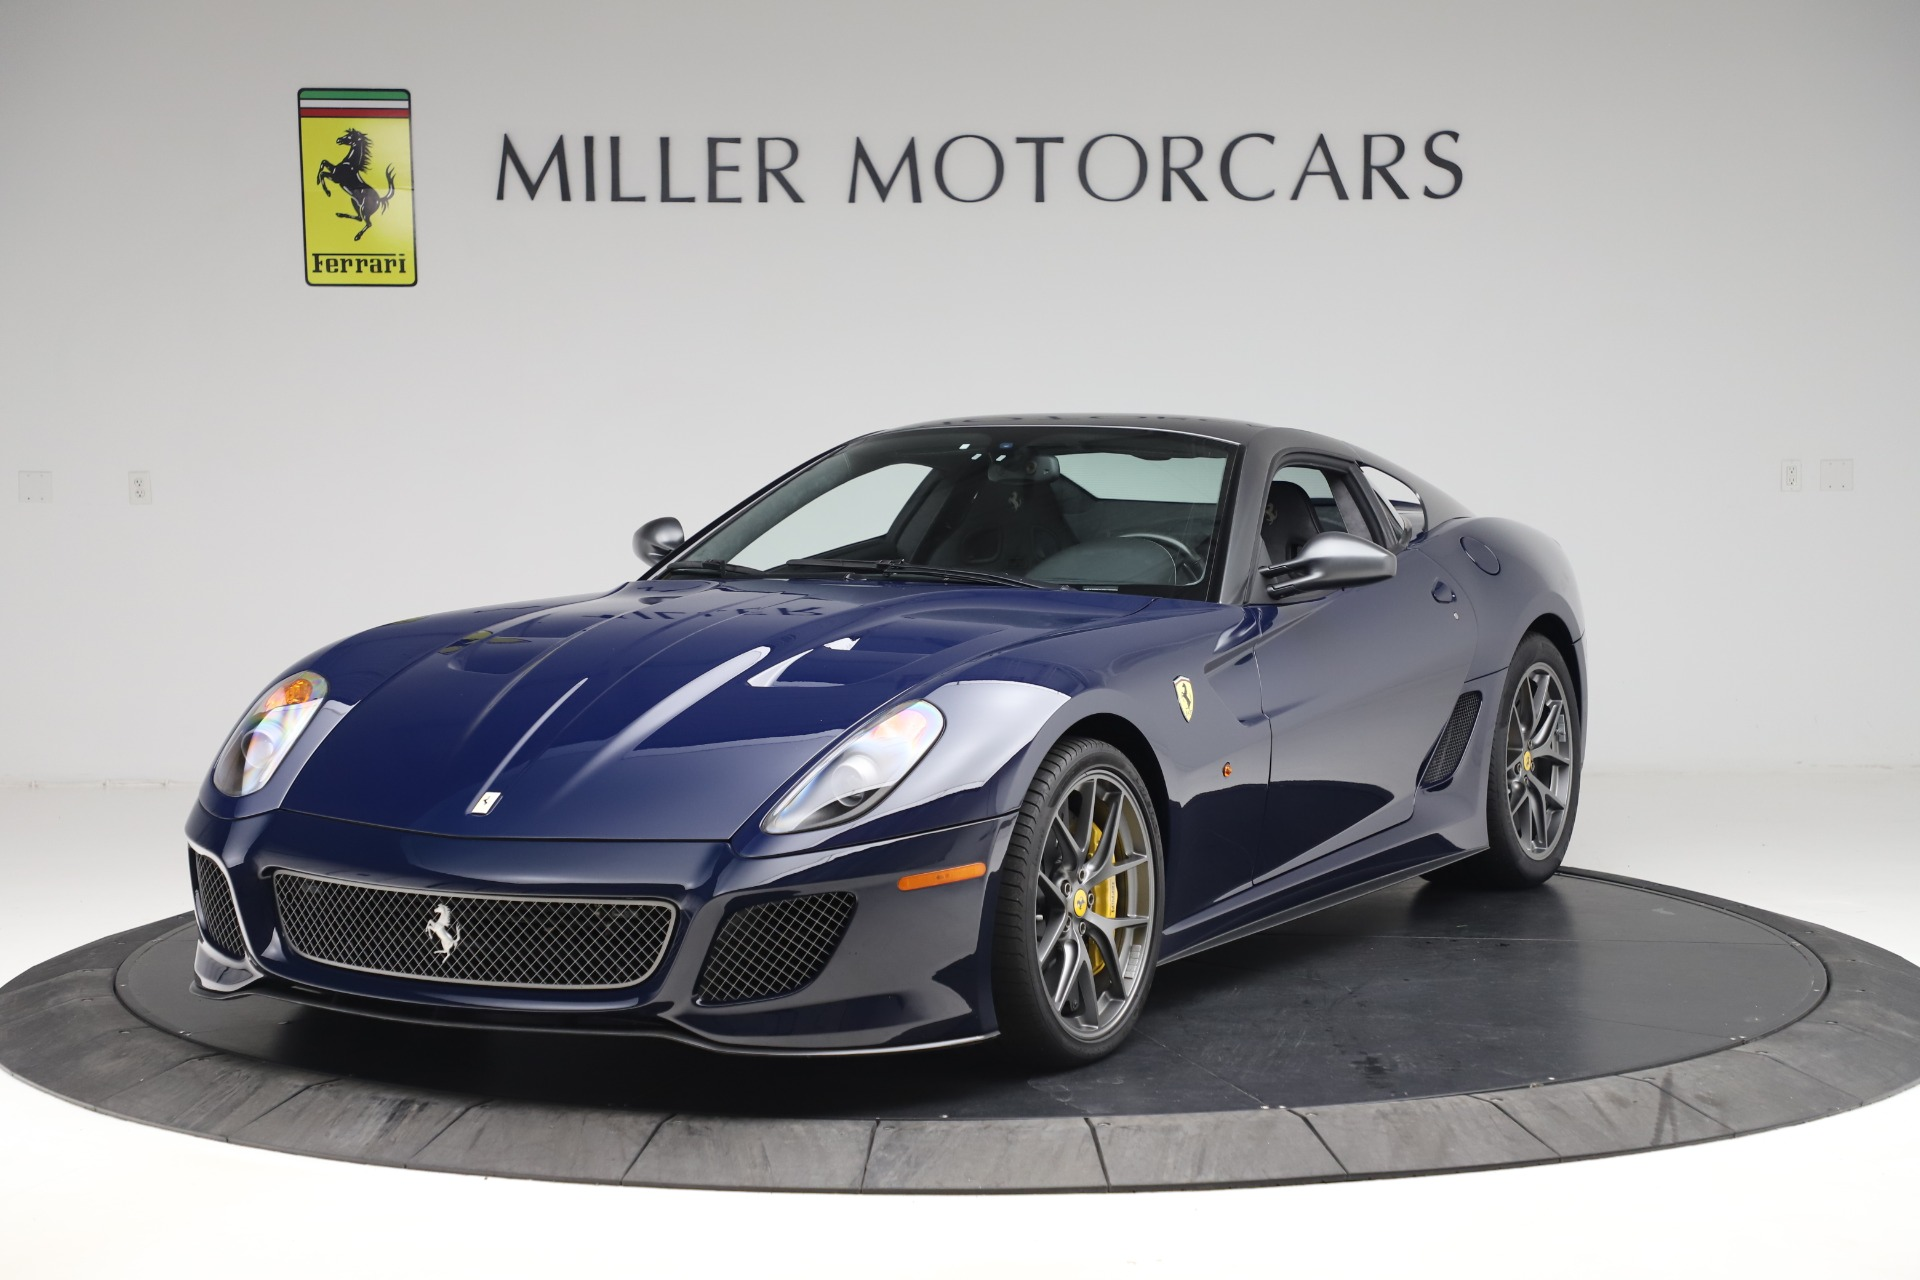 Used 2011 Ferrari 599 GTO for sale $565,900 at Bentley Greenwich in Greenwich CT 06830 1